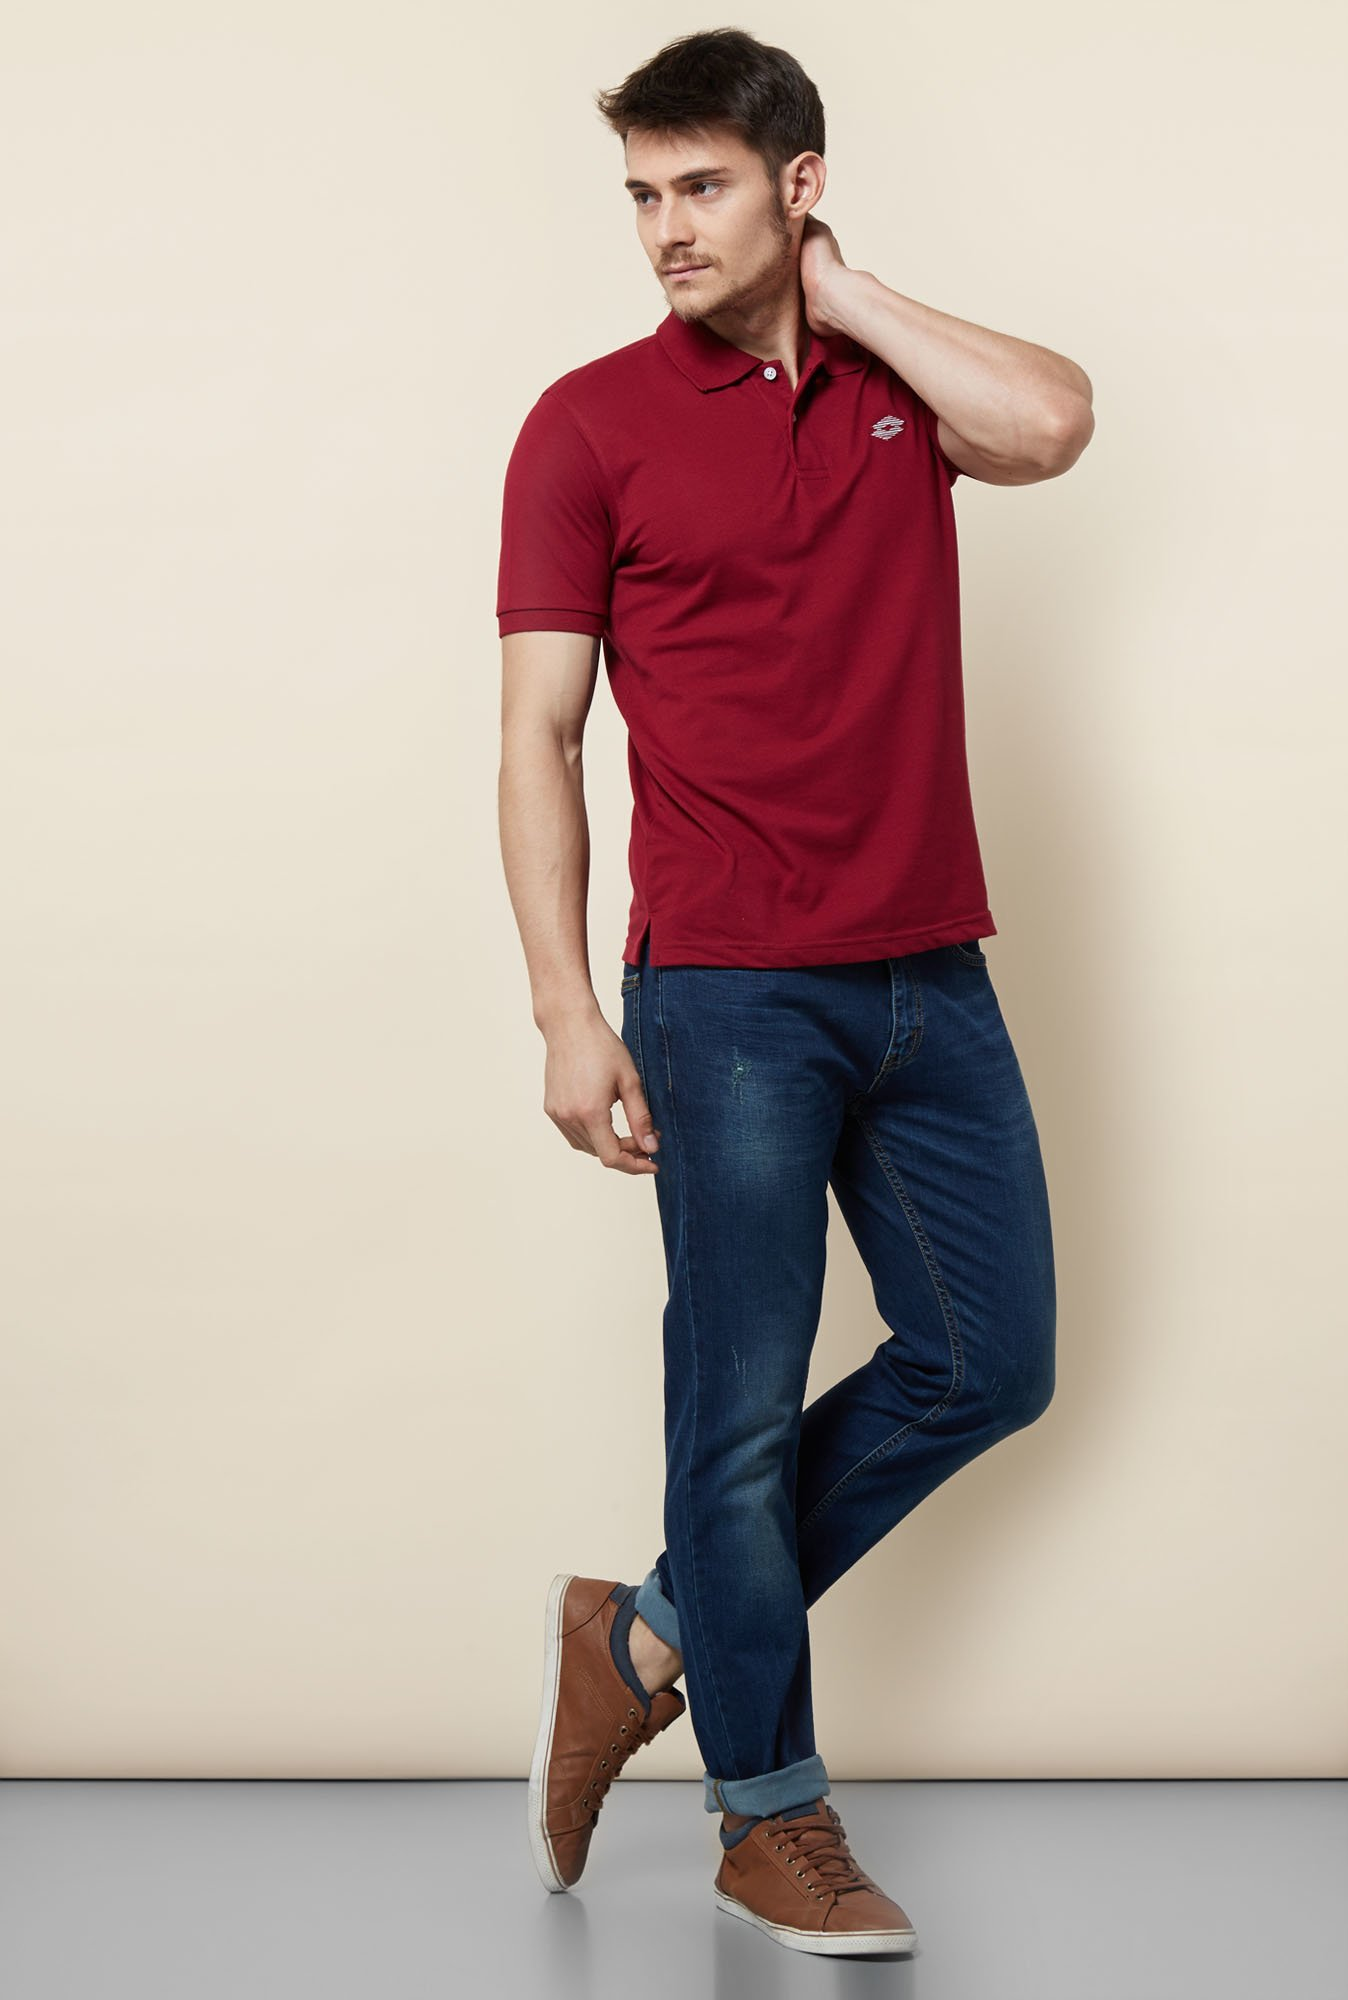 Lotto Maroon Solid Polo T Shirt